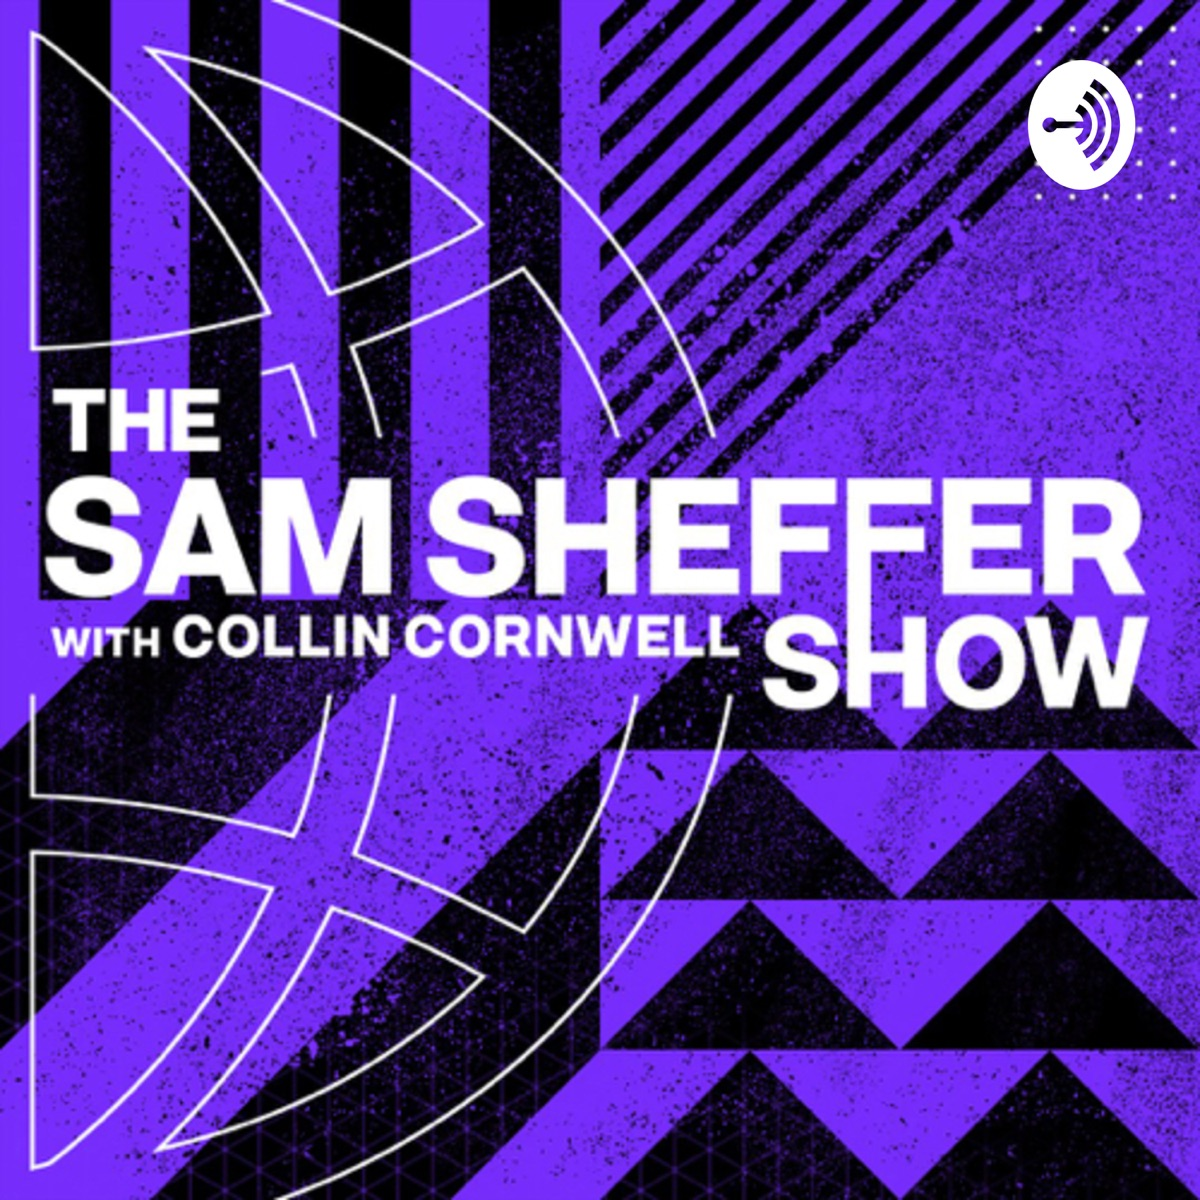 The Sam Sheffer Show with Collin Cornwell